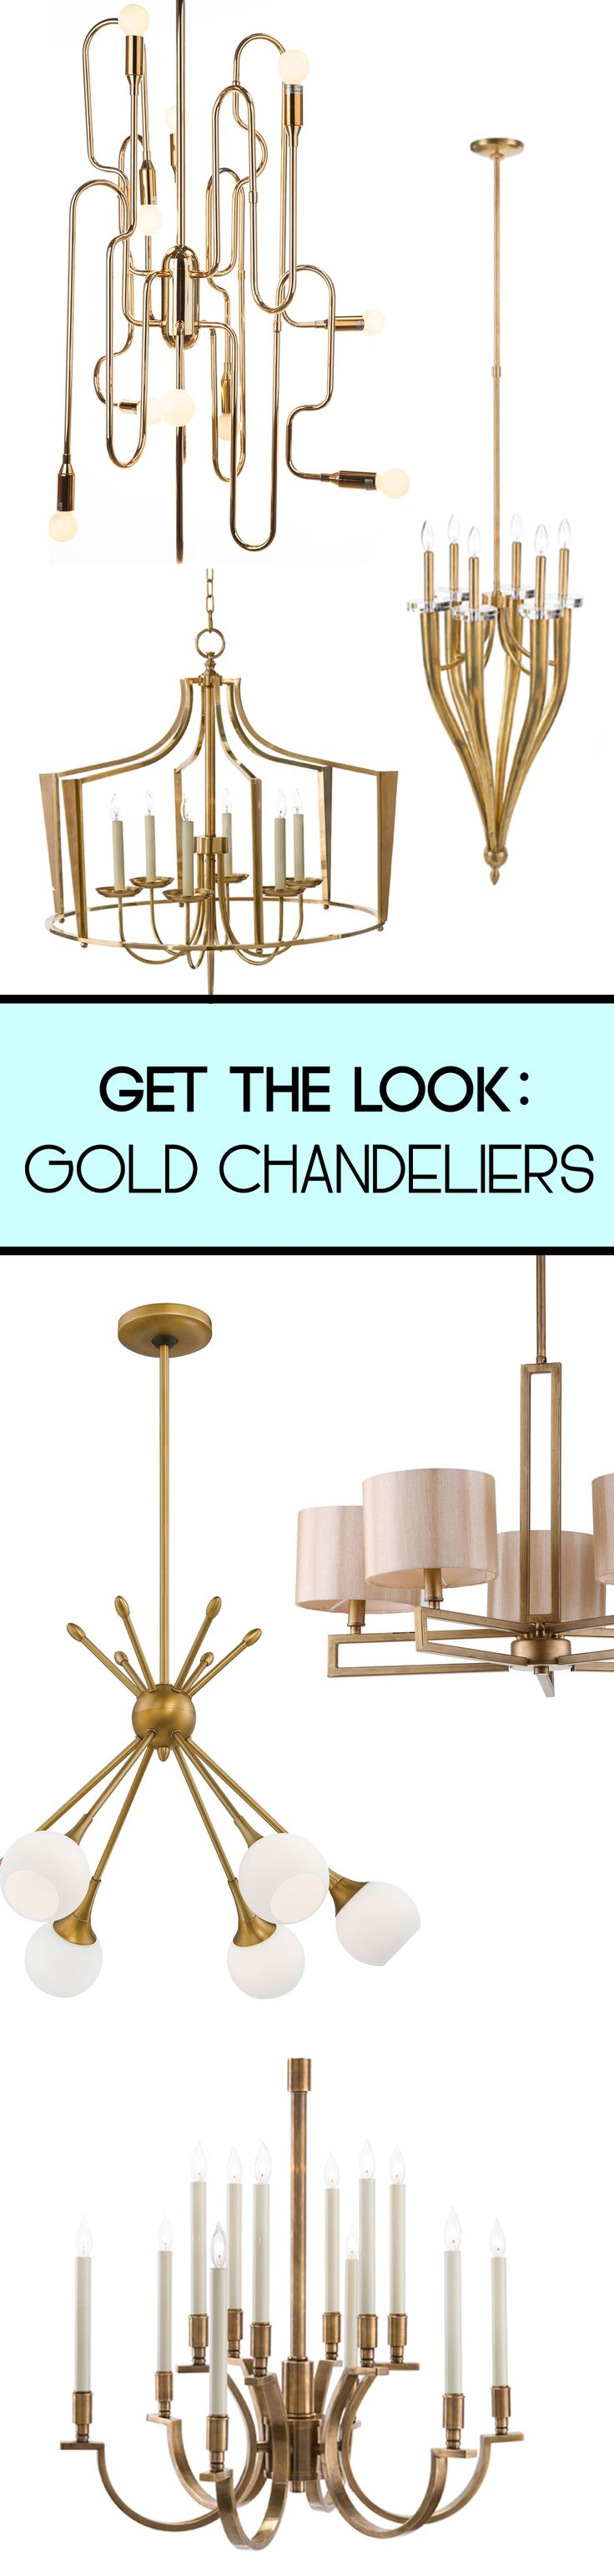 Gold and brass fixtures and faucets promising or passe apartment - Brighten Up Your Space With A Dazzling Gold Chandelier From Luxedecor Goforthegold